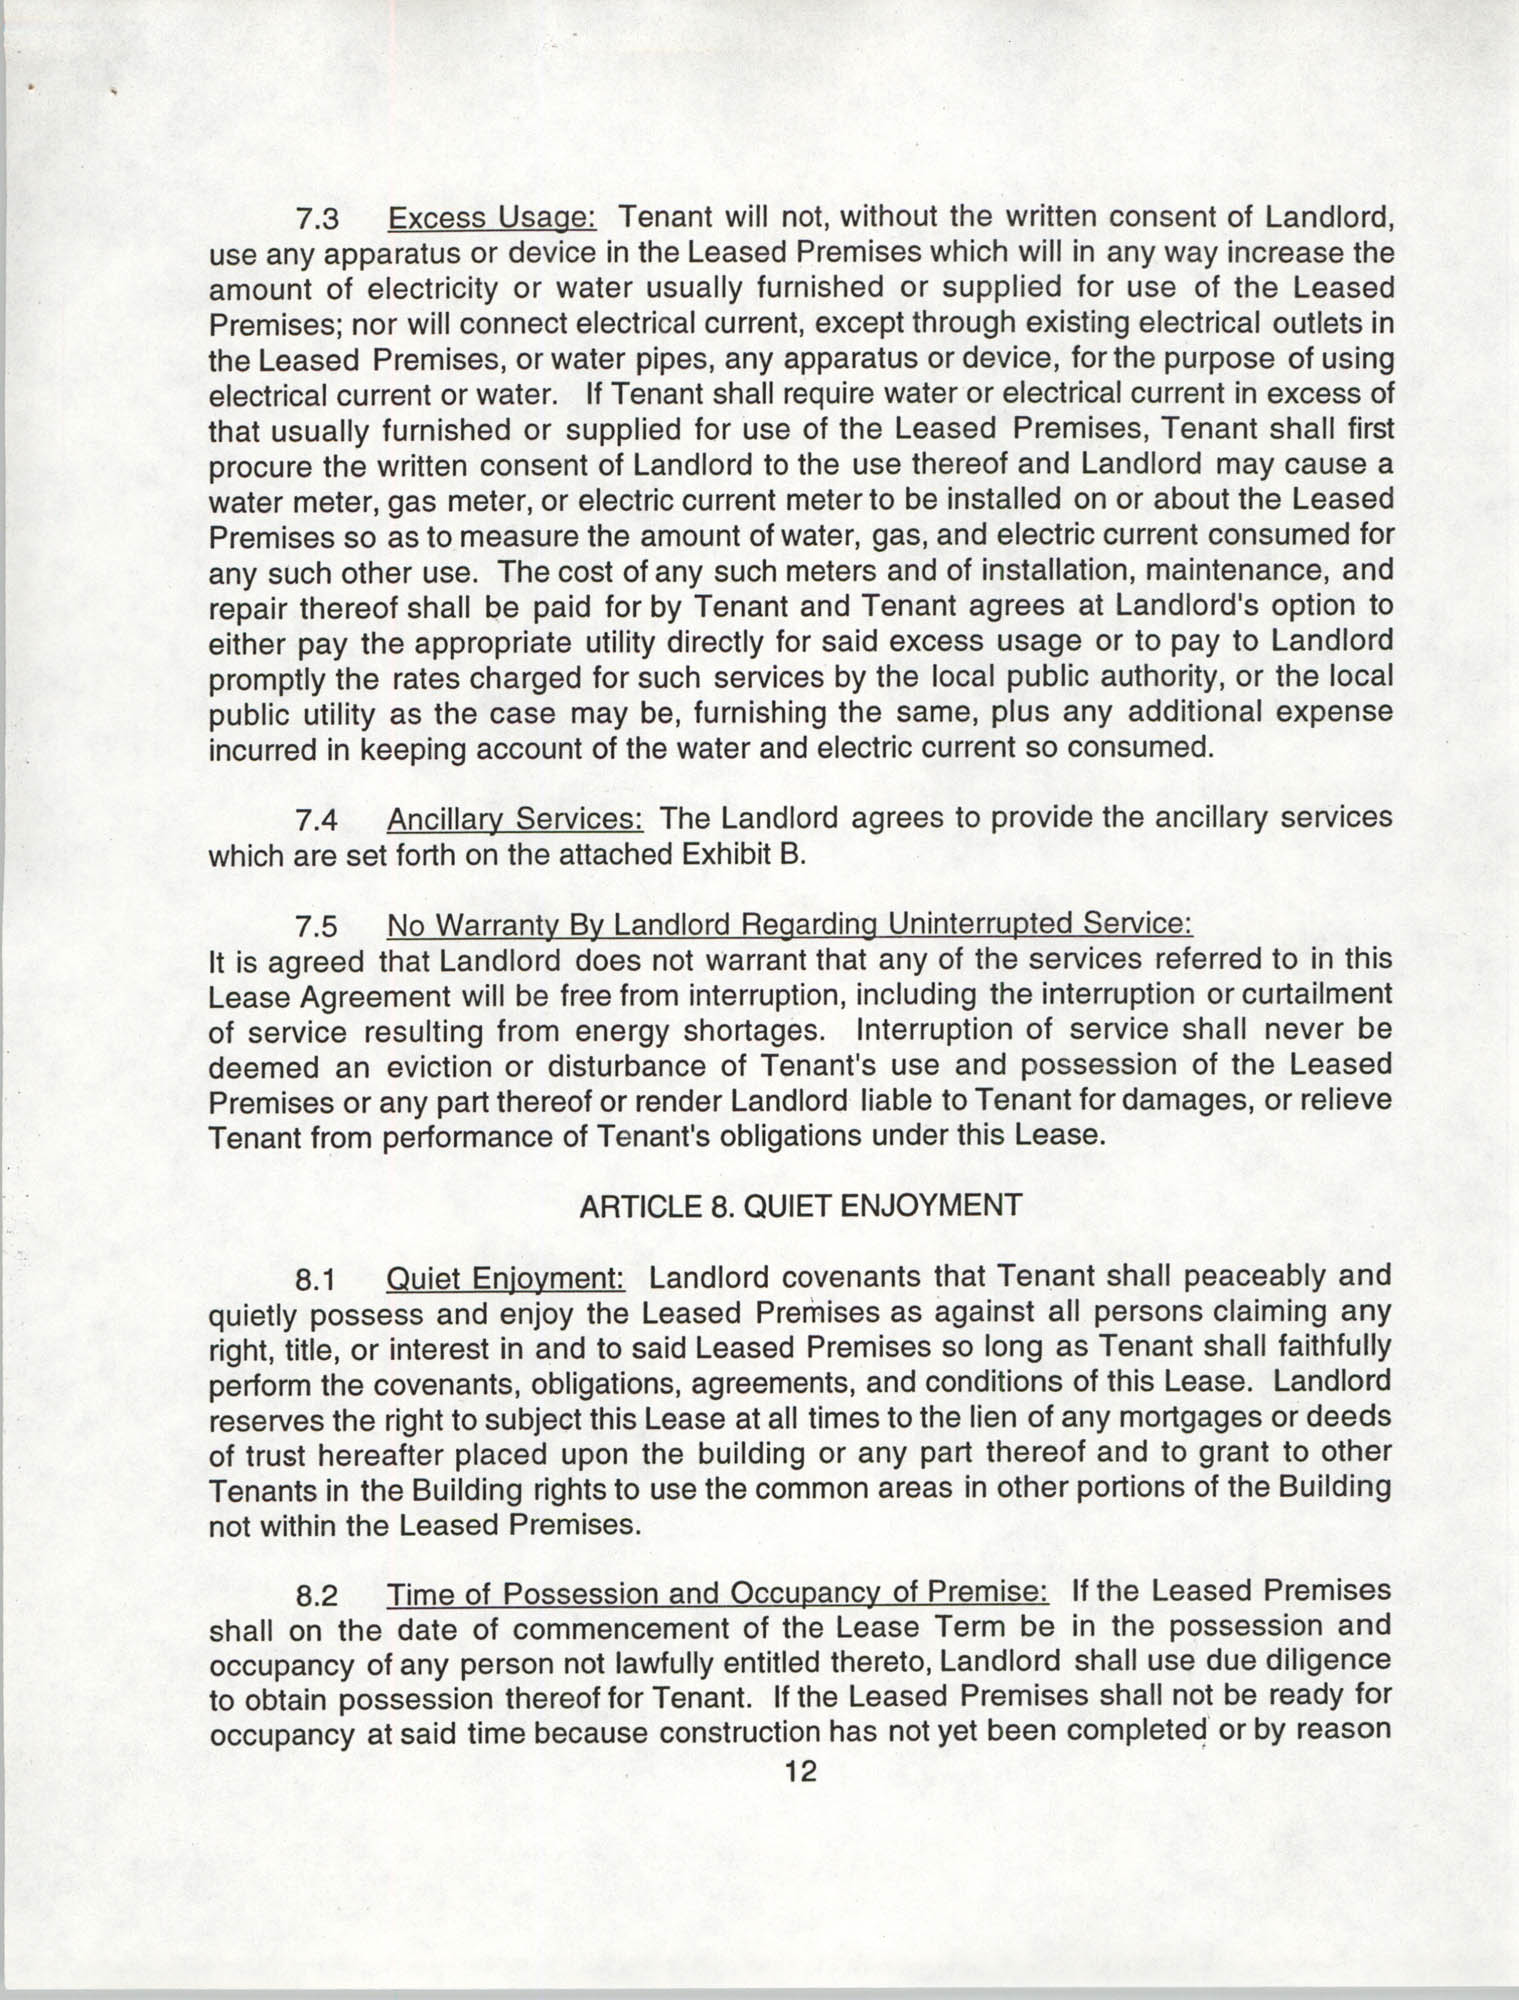 Charleston Branch of the NAACP Leasing Agreement, July 1994 to June 1995, Page 12